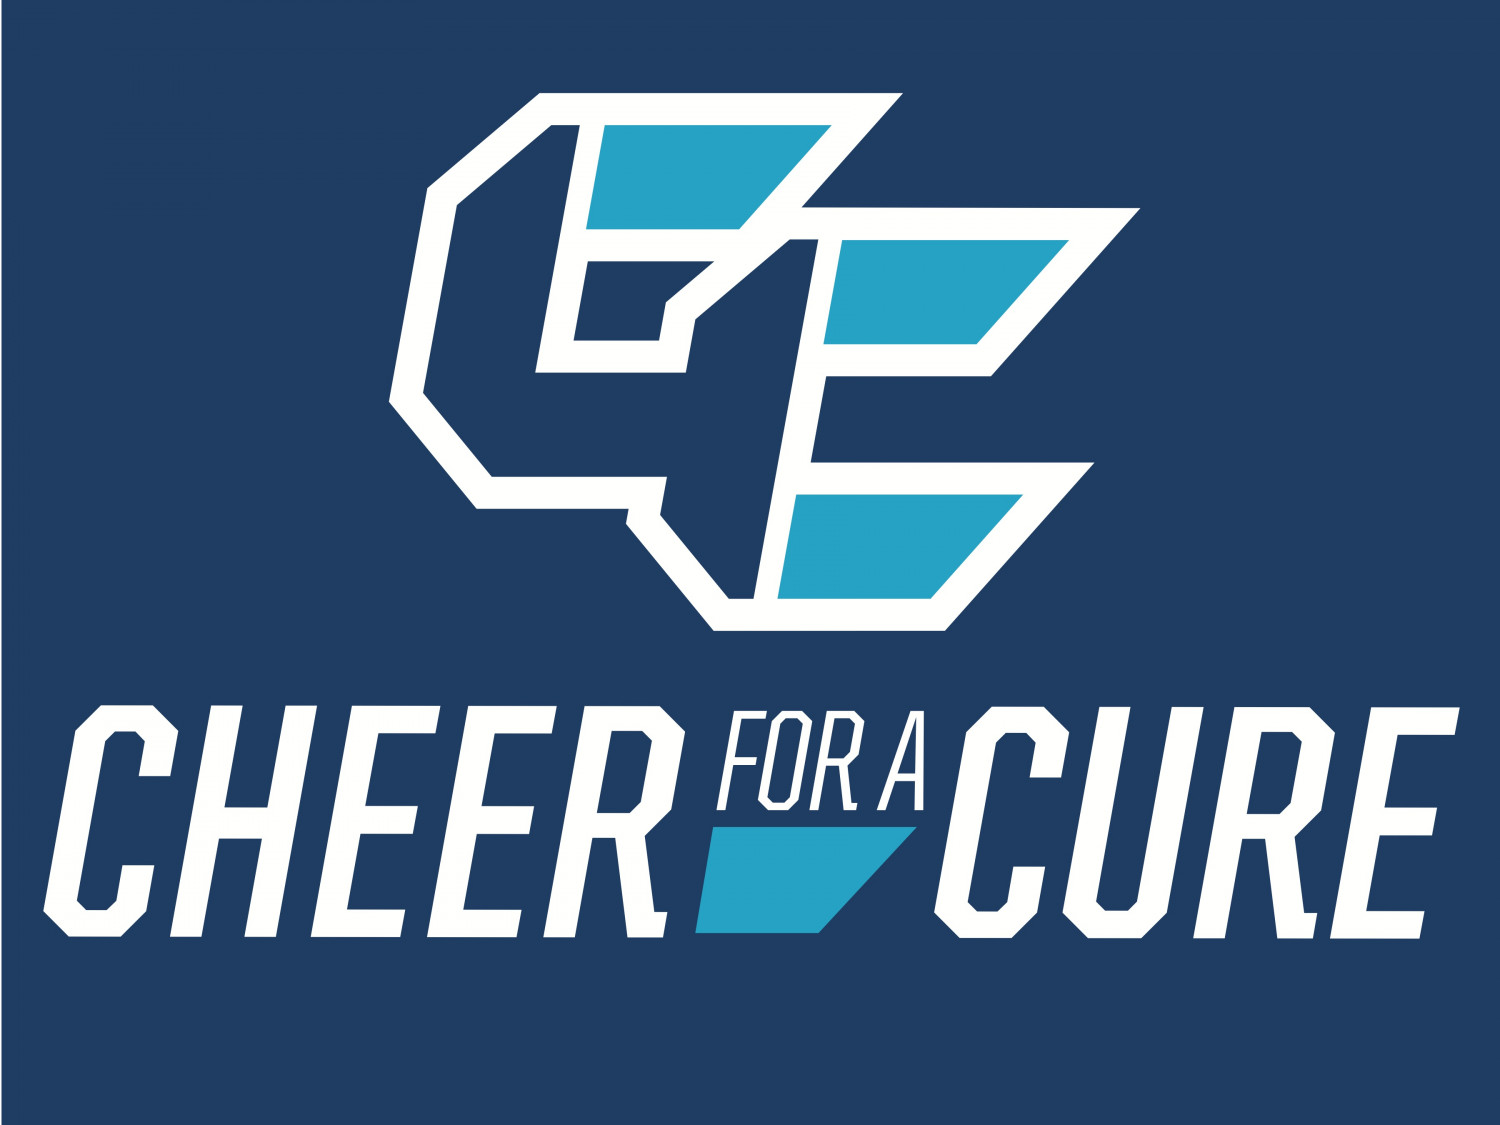 Cheer for a Cure Infographic